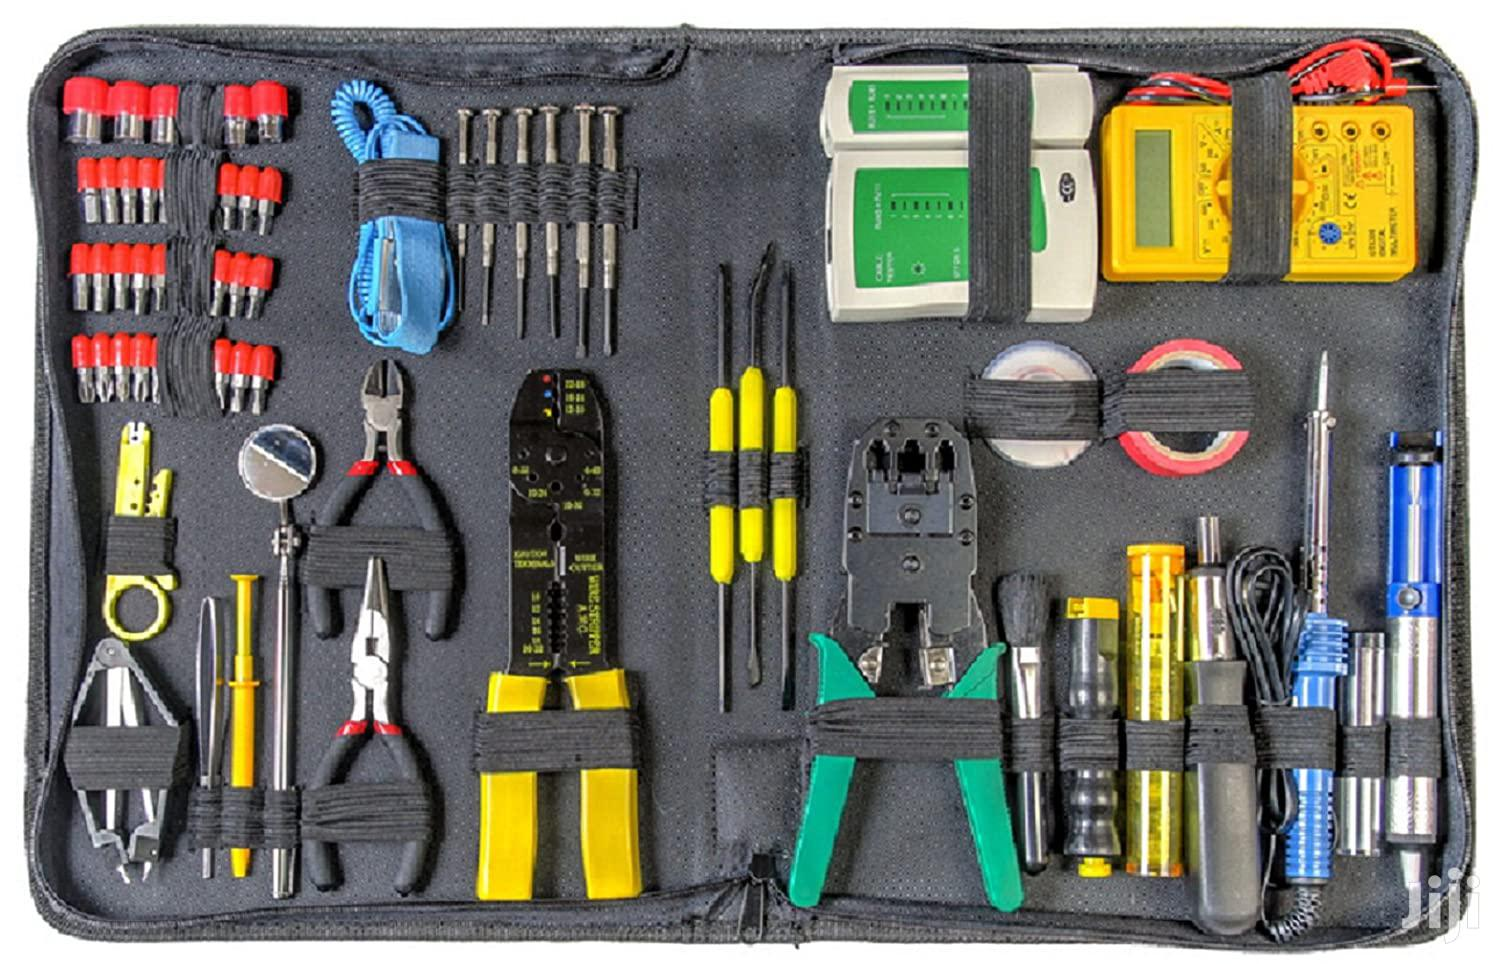 66 Piece PC Repair Toolkit With Network Tester